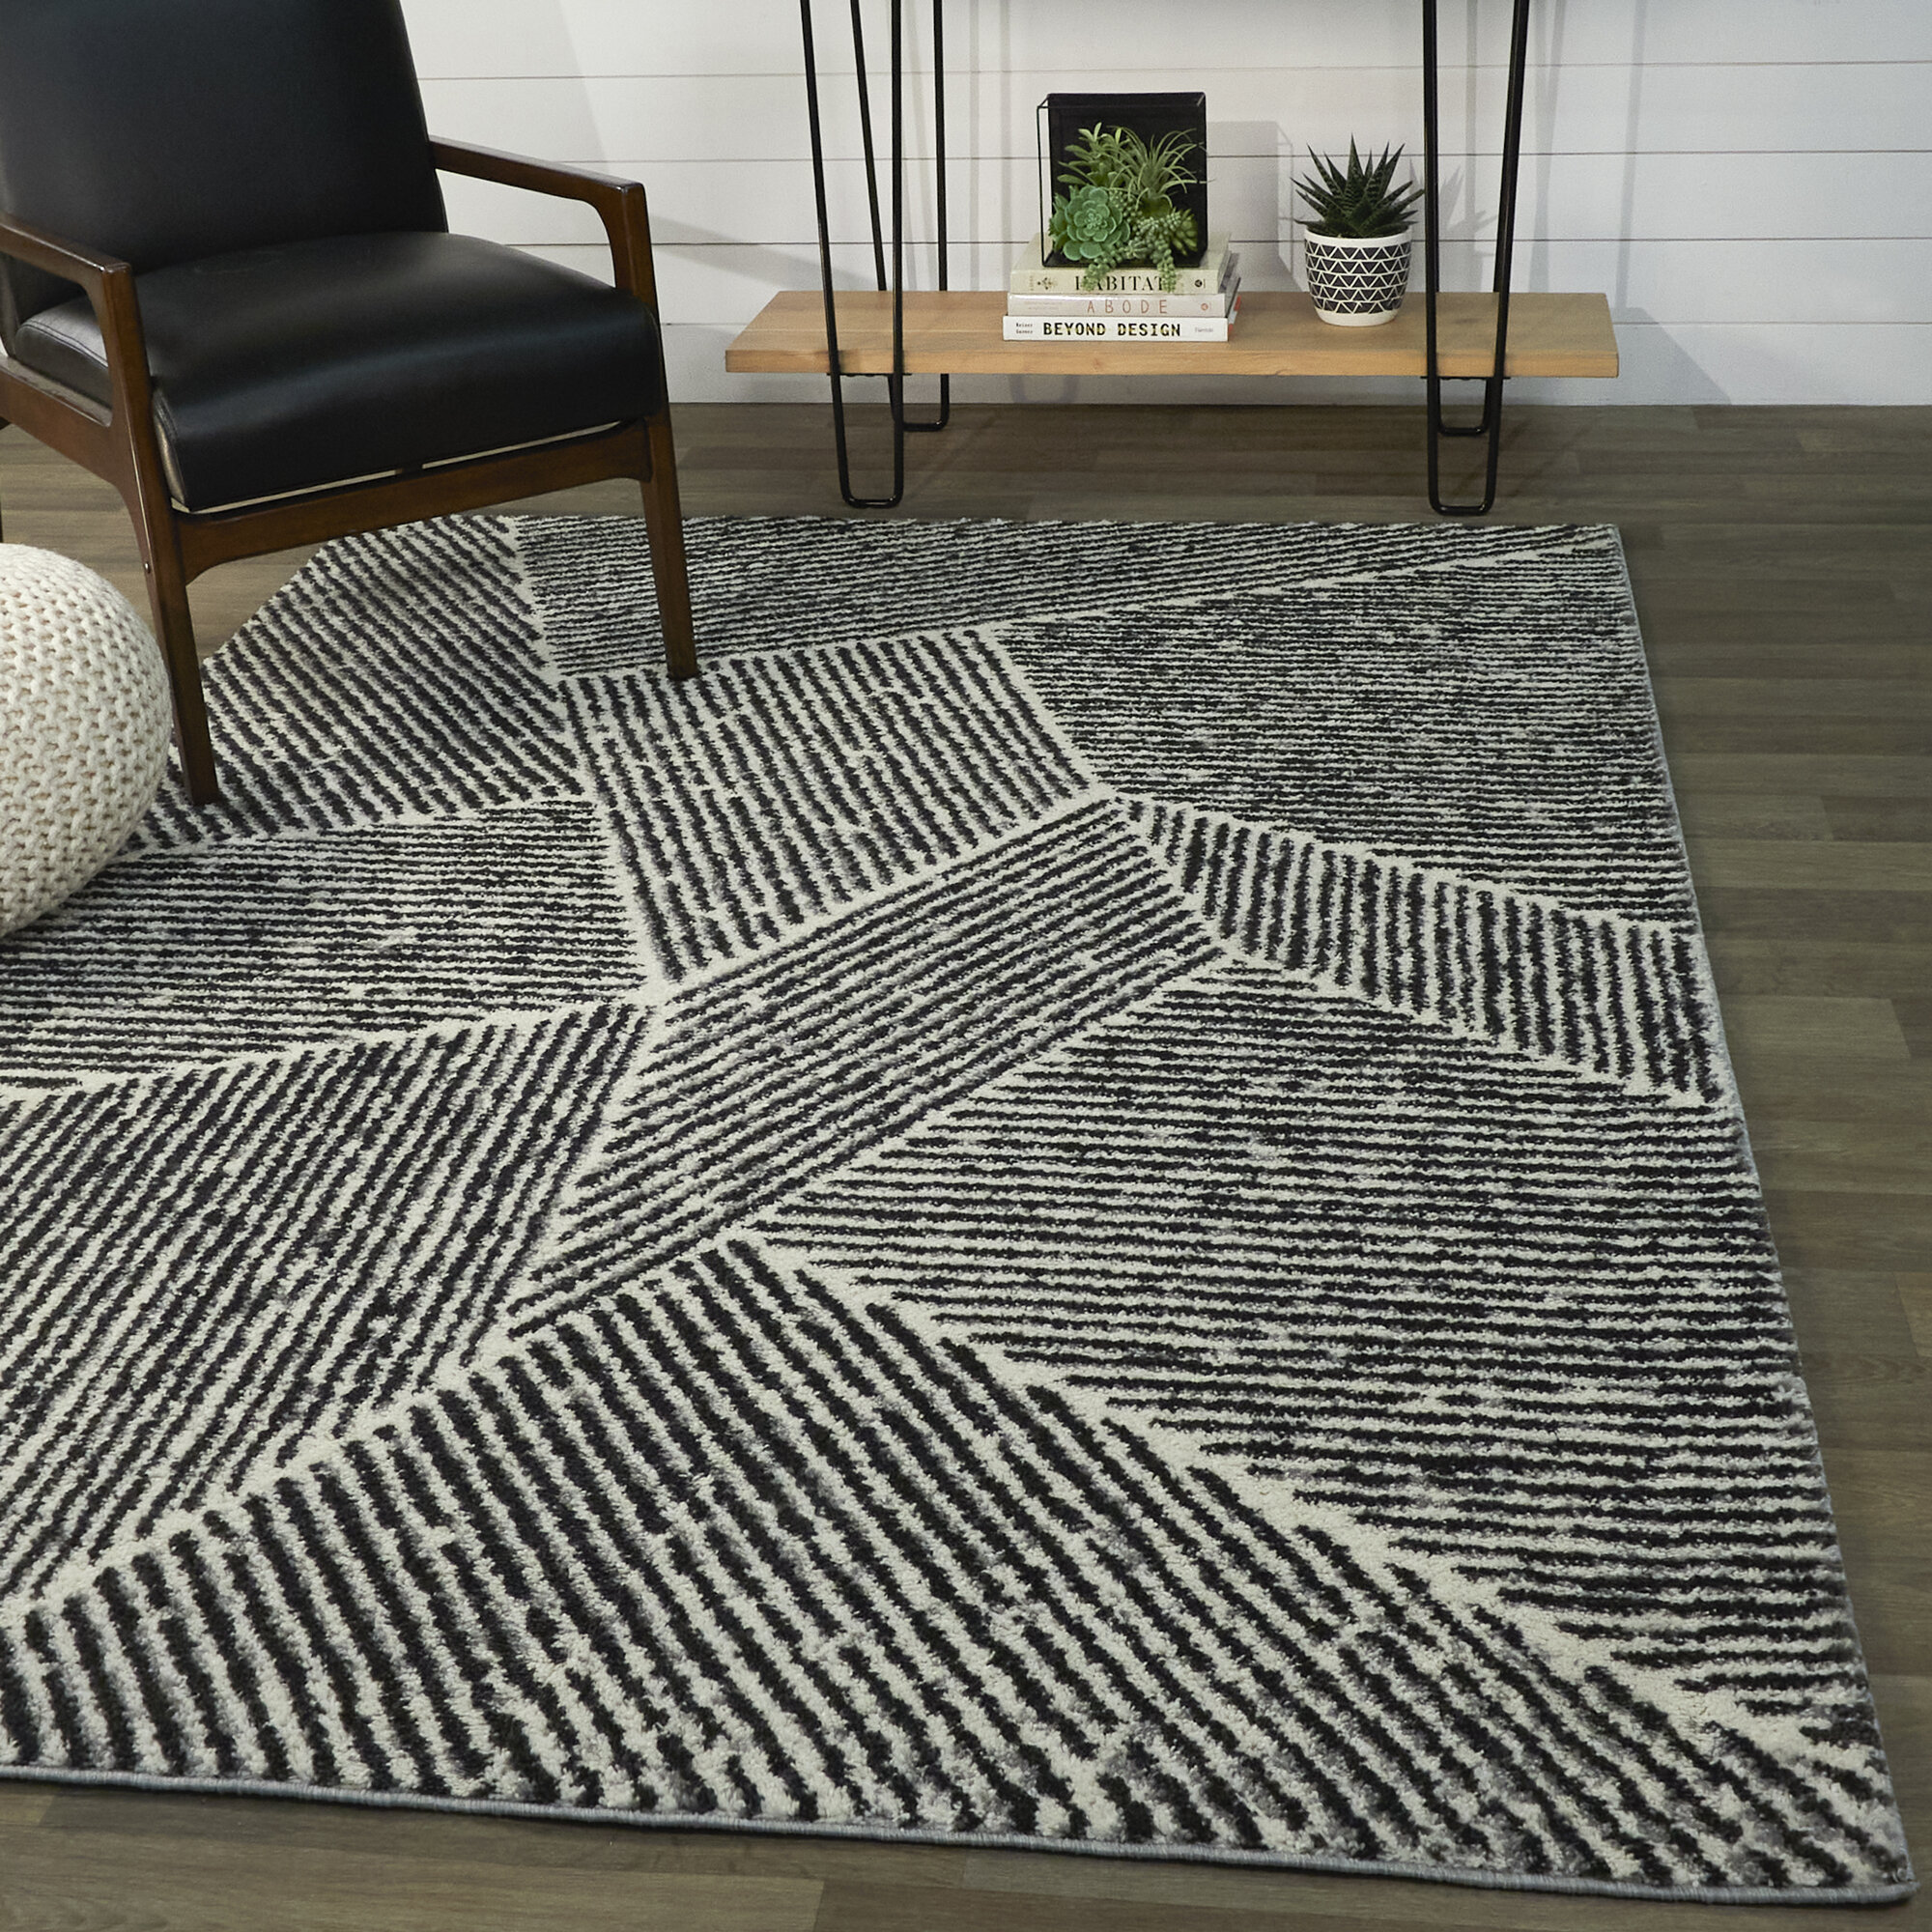 Foundry Select Nickelsville Striped Black Beige Area Rug Reviews Wayfair Ca